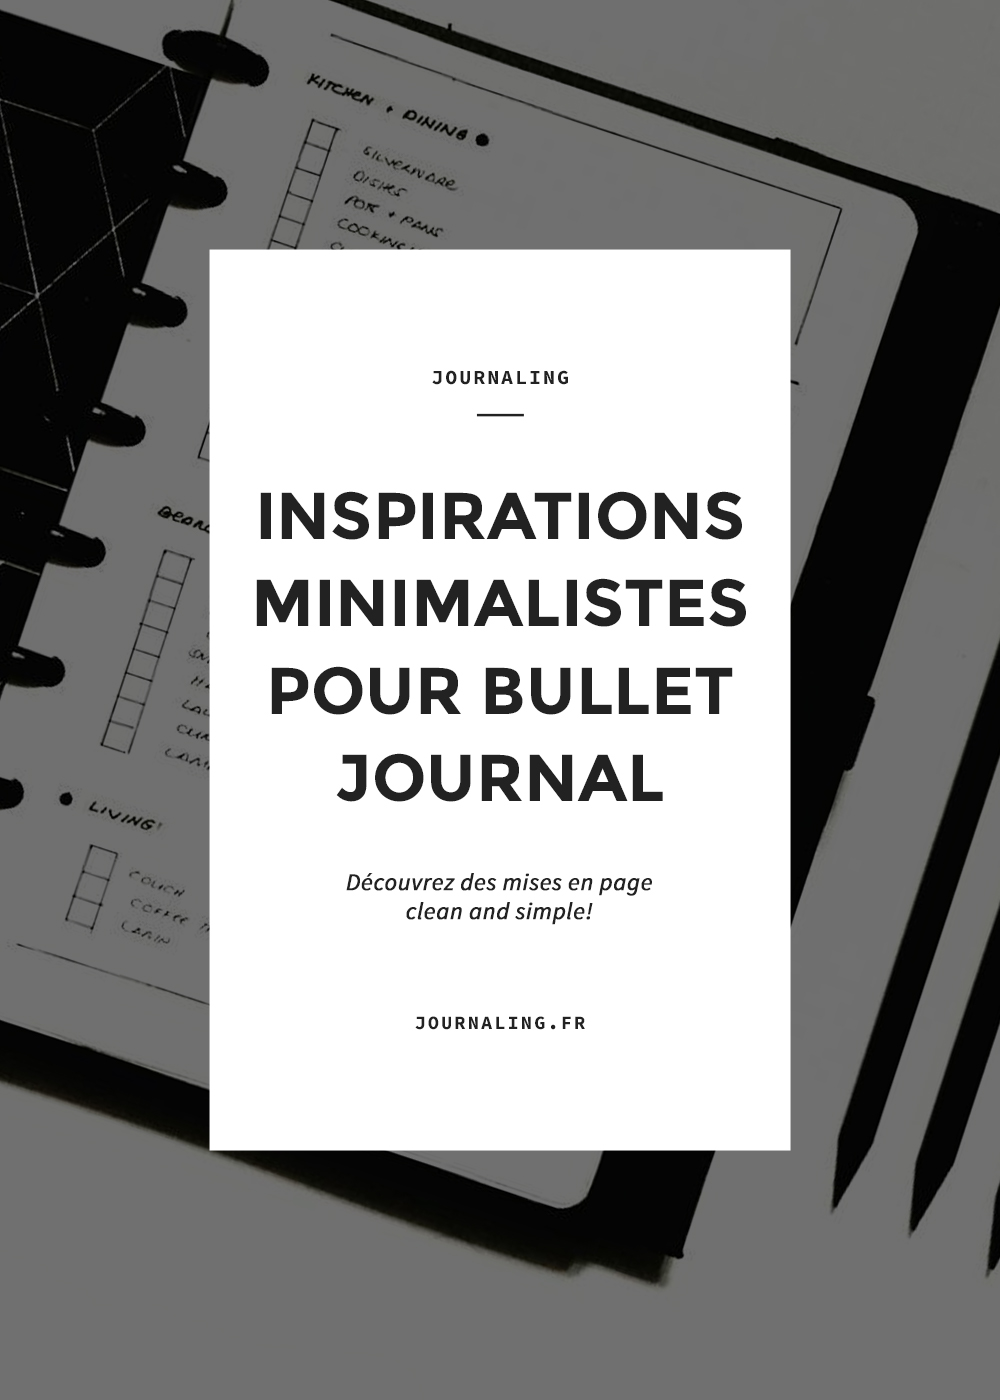 Bullet Journal Minimaliste: 3 inspirations à ne pas rater